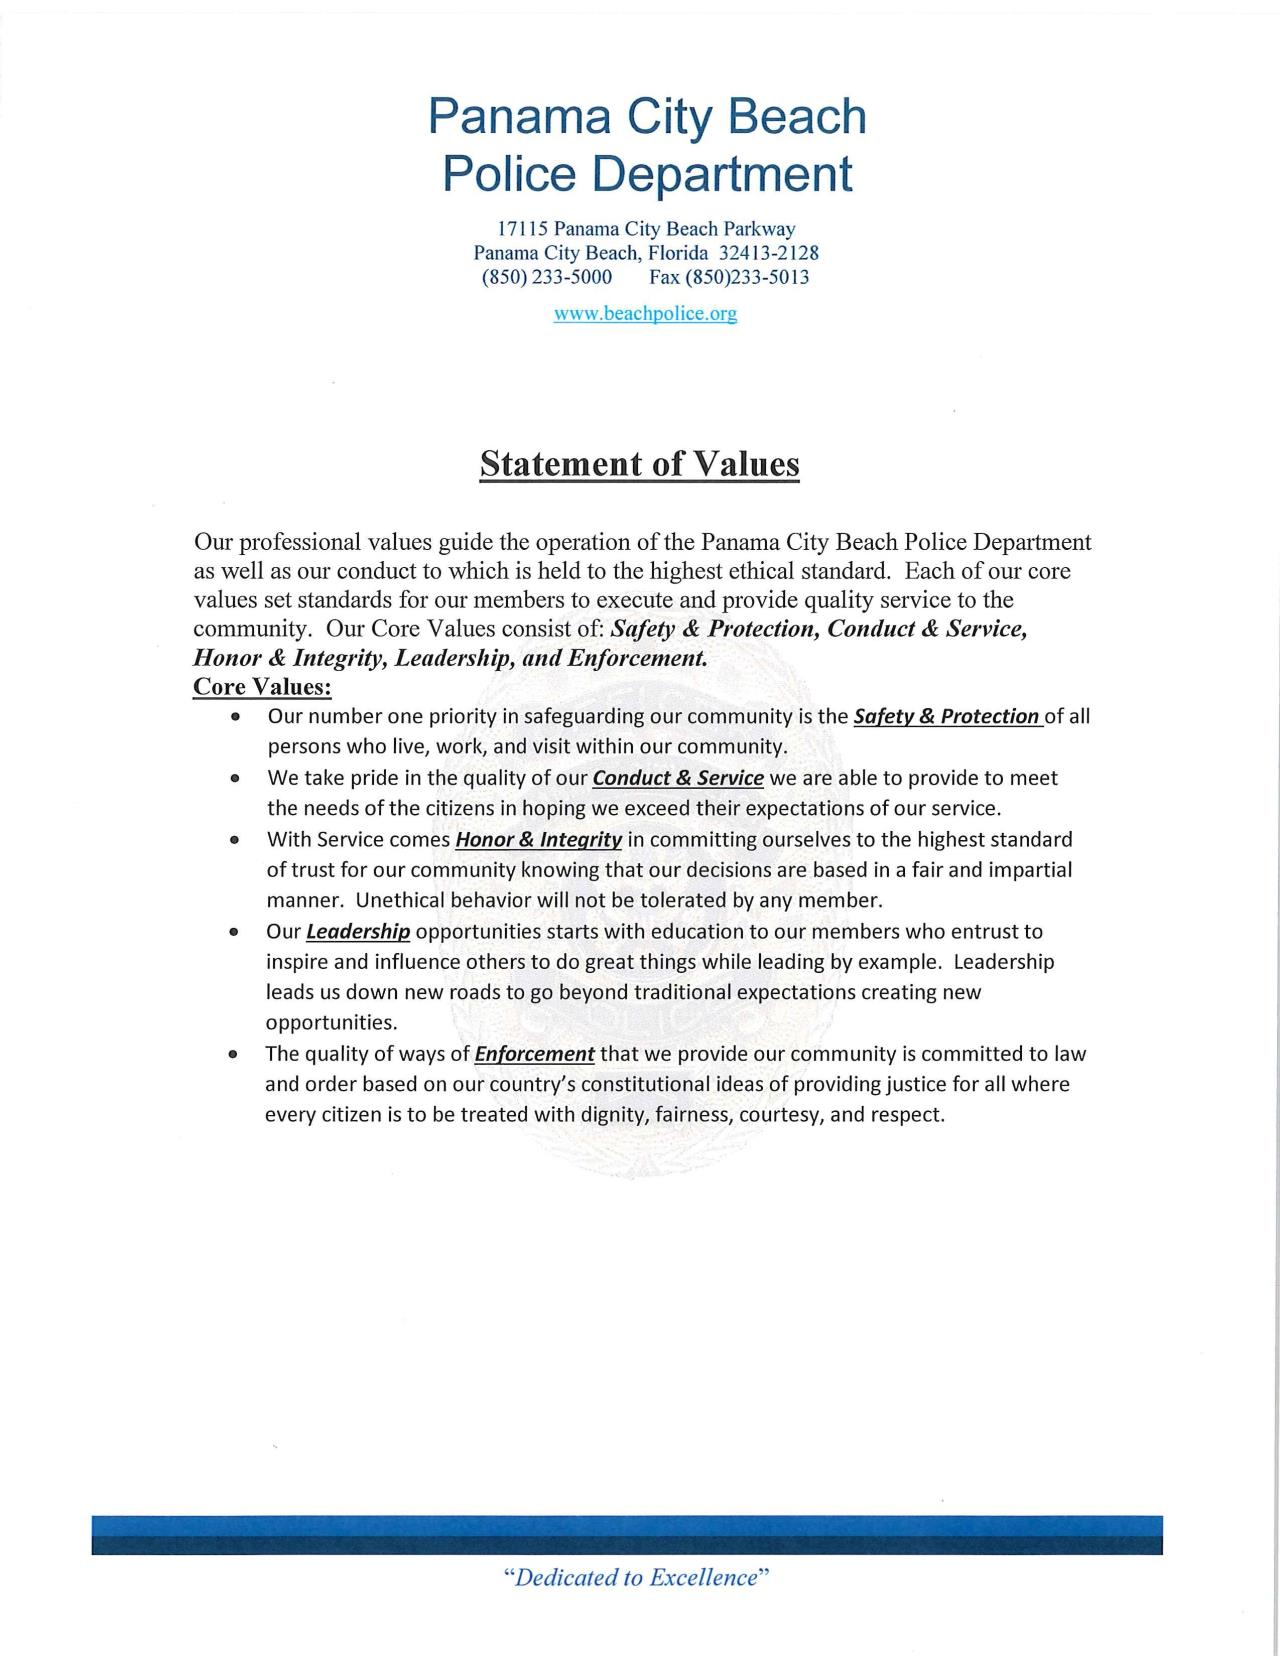 PCBPD Statement of Values